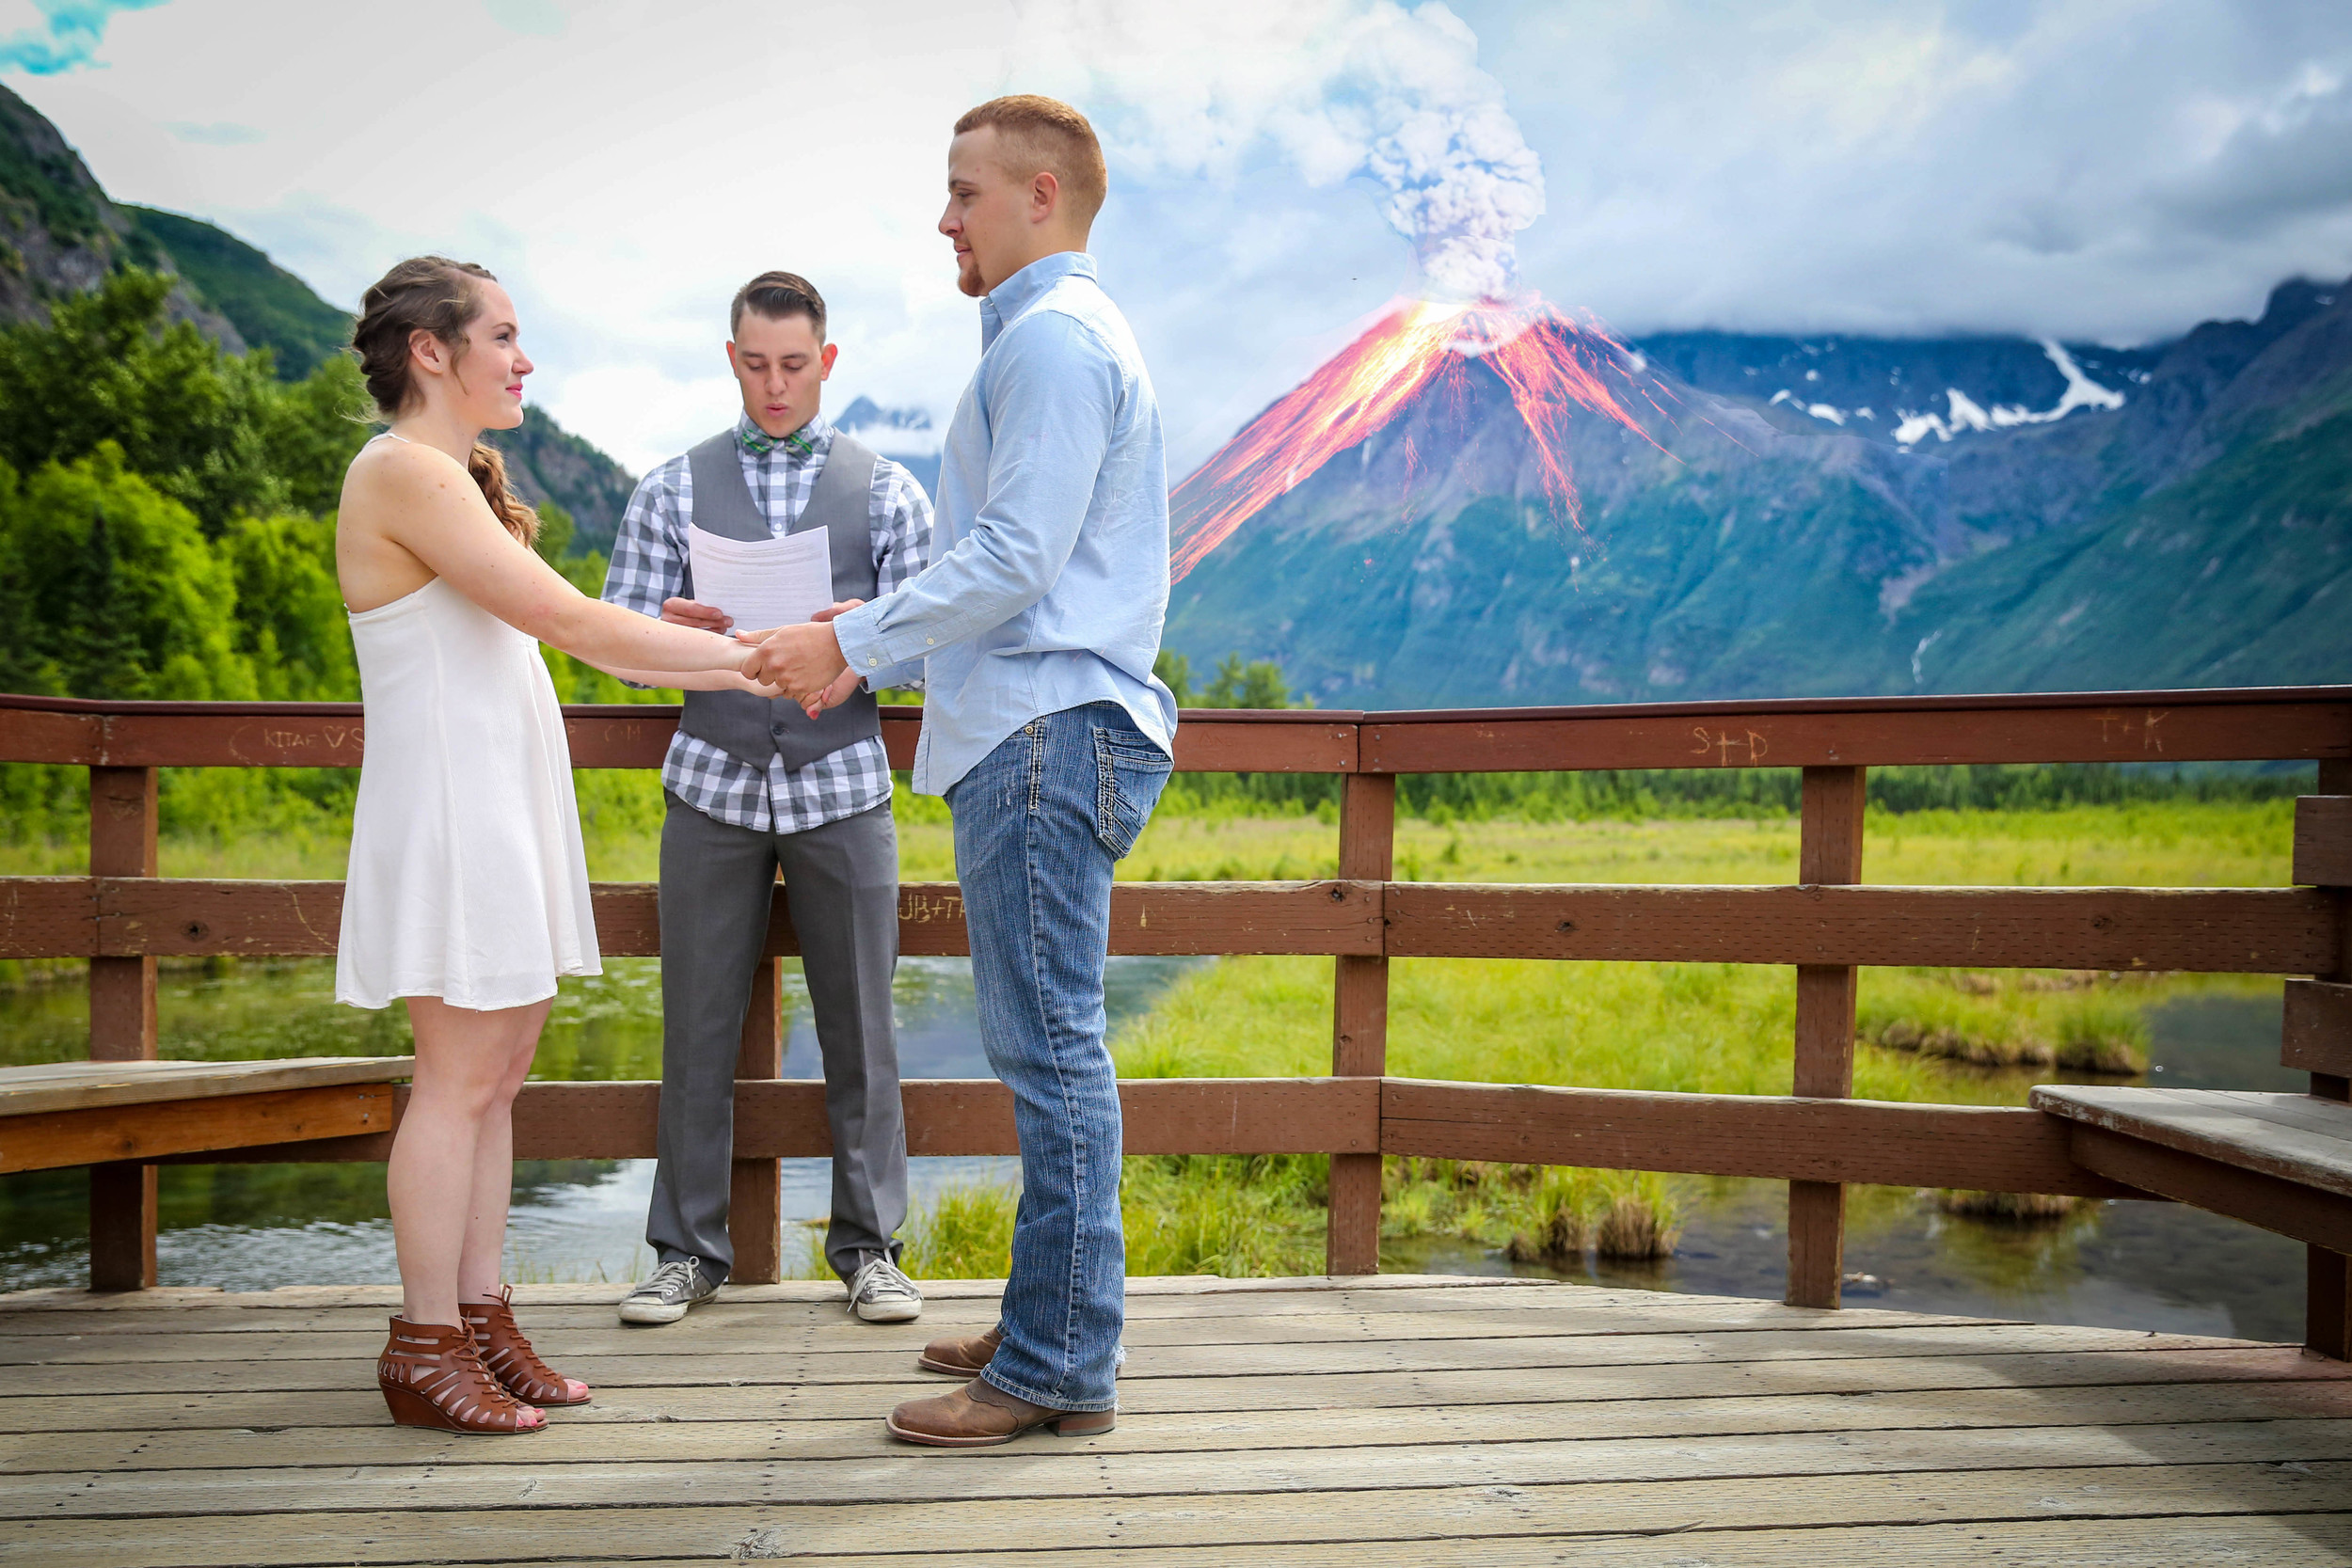 Wade said he wished they'd gotten married in front of an erupting volcano. And sometimes when you're finally going a little looney from editing, photoshopping Alaska's mountains seems like the perfect way to spend your time. This idea and photo definitely sums up how fun this couple is!